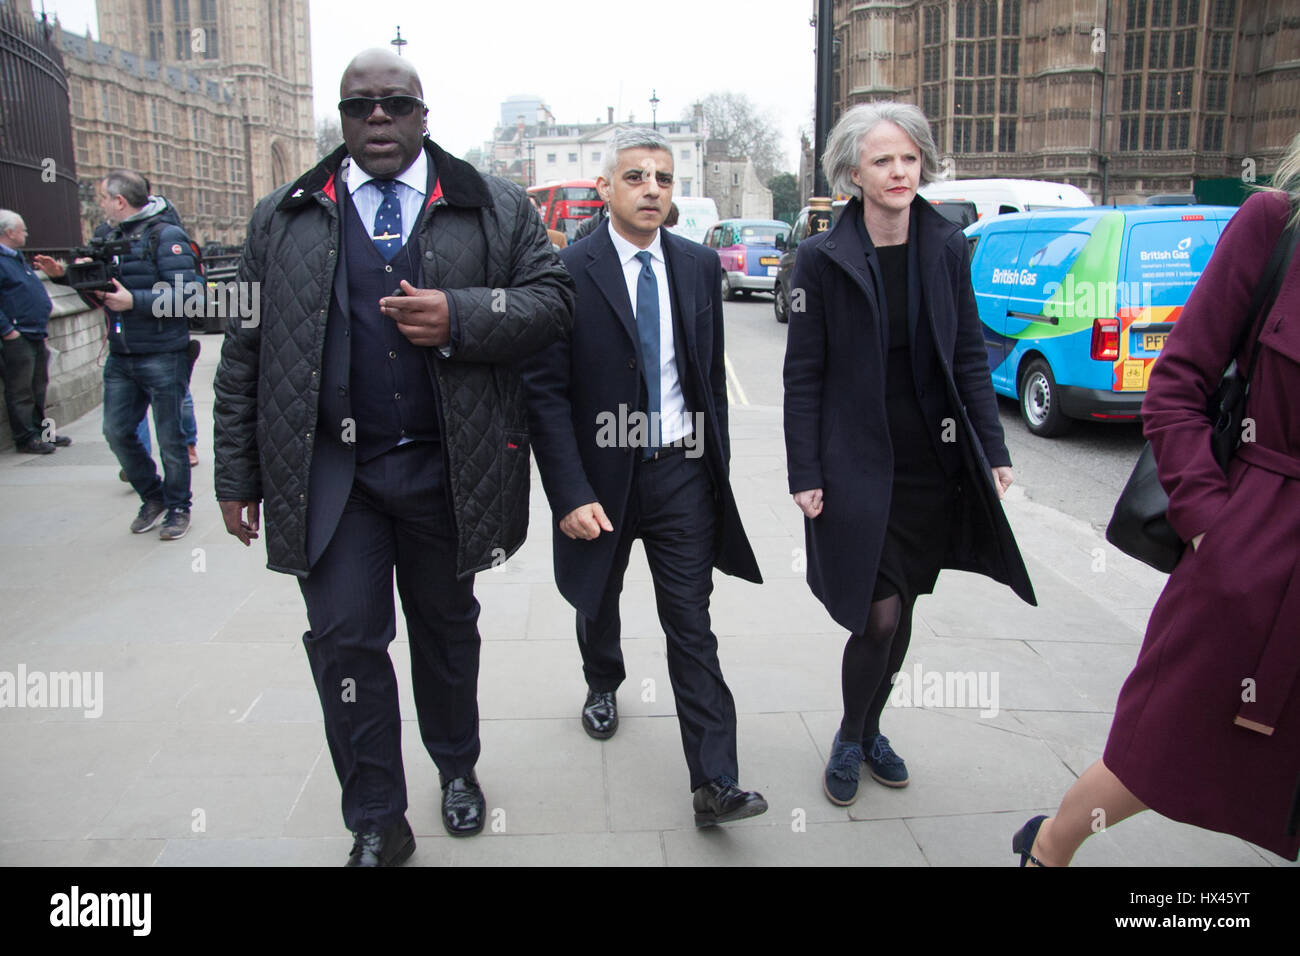 London, UK. 24th Mar, 2017. London Mayor Sadiq Khan visits Parliament to pay tribute to police officers after the - Stock Image